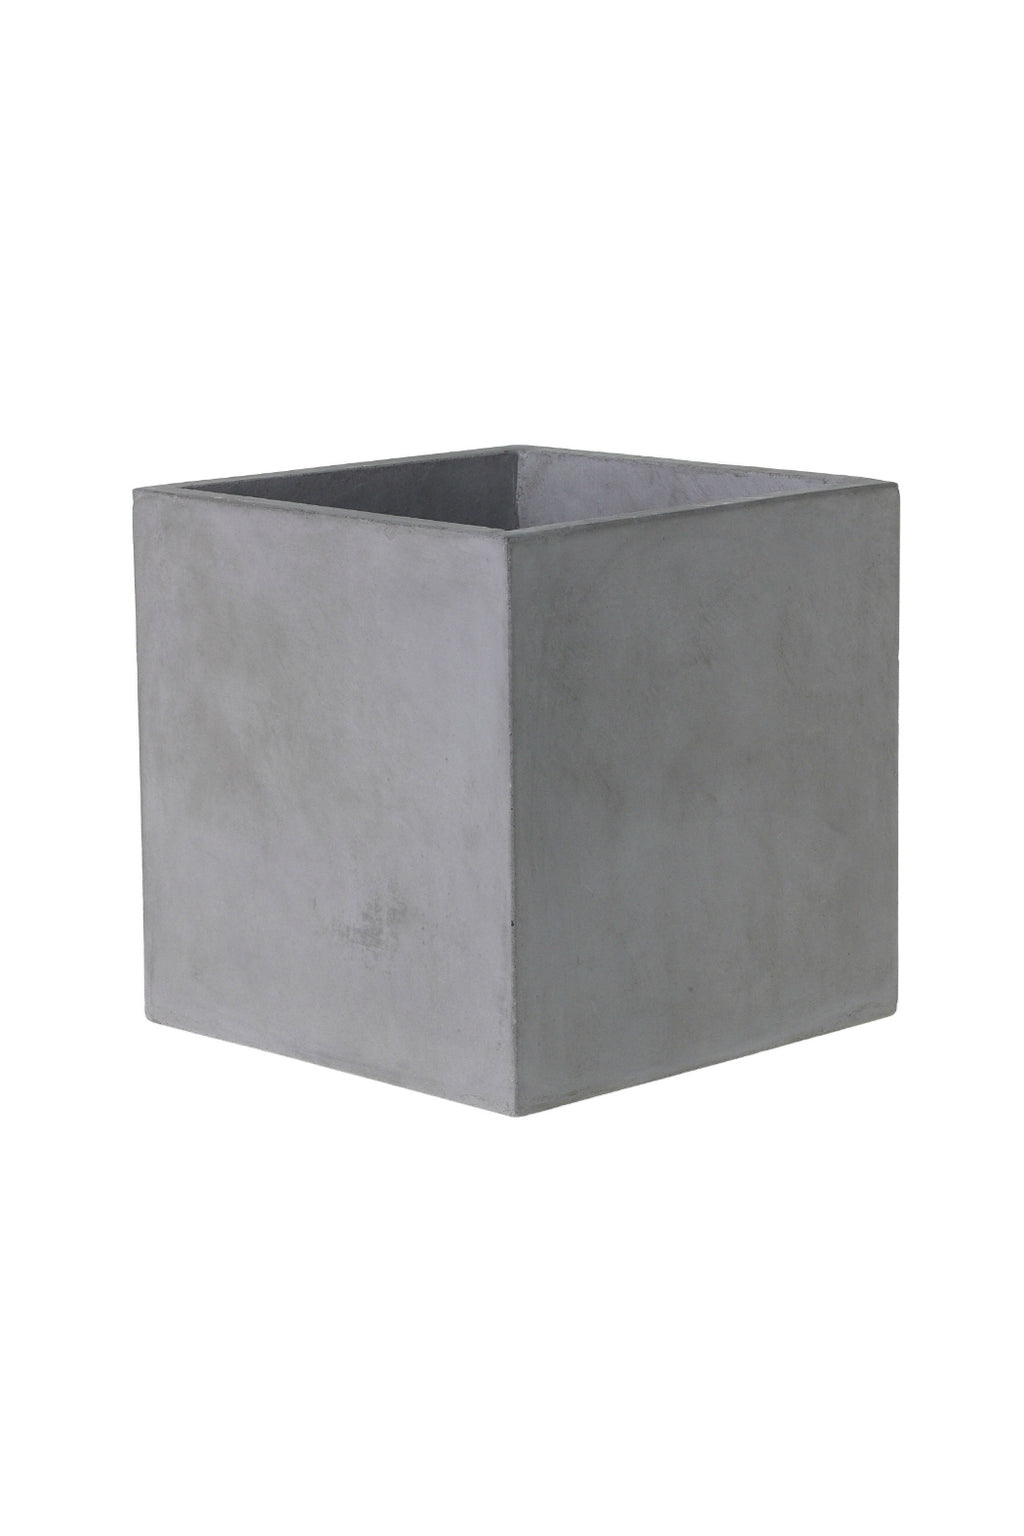 Accent Decor Newport Cube Planter